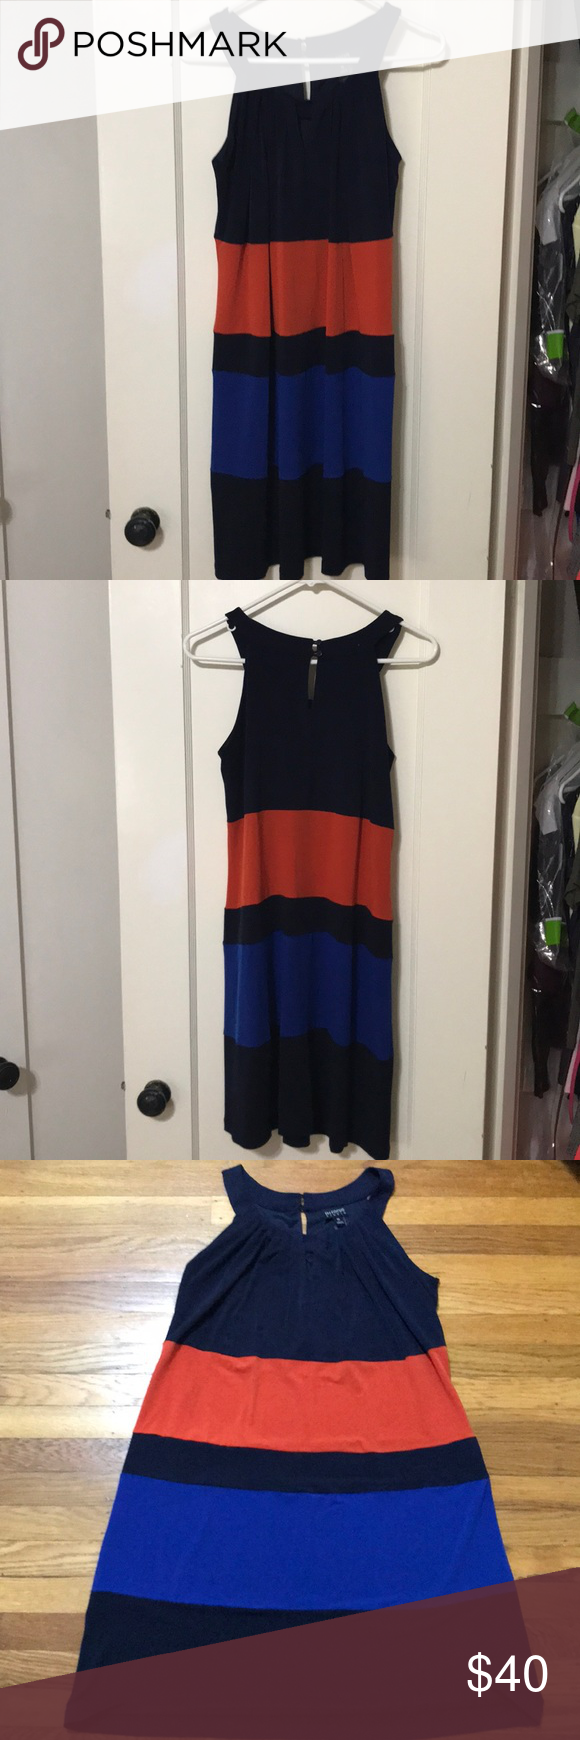 Enfocus Studio Summer Dress Navy, Blue, and Orange Color Blocked. 95% Polyester. 5% Spandex Enfocus Studios Dresses